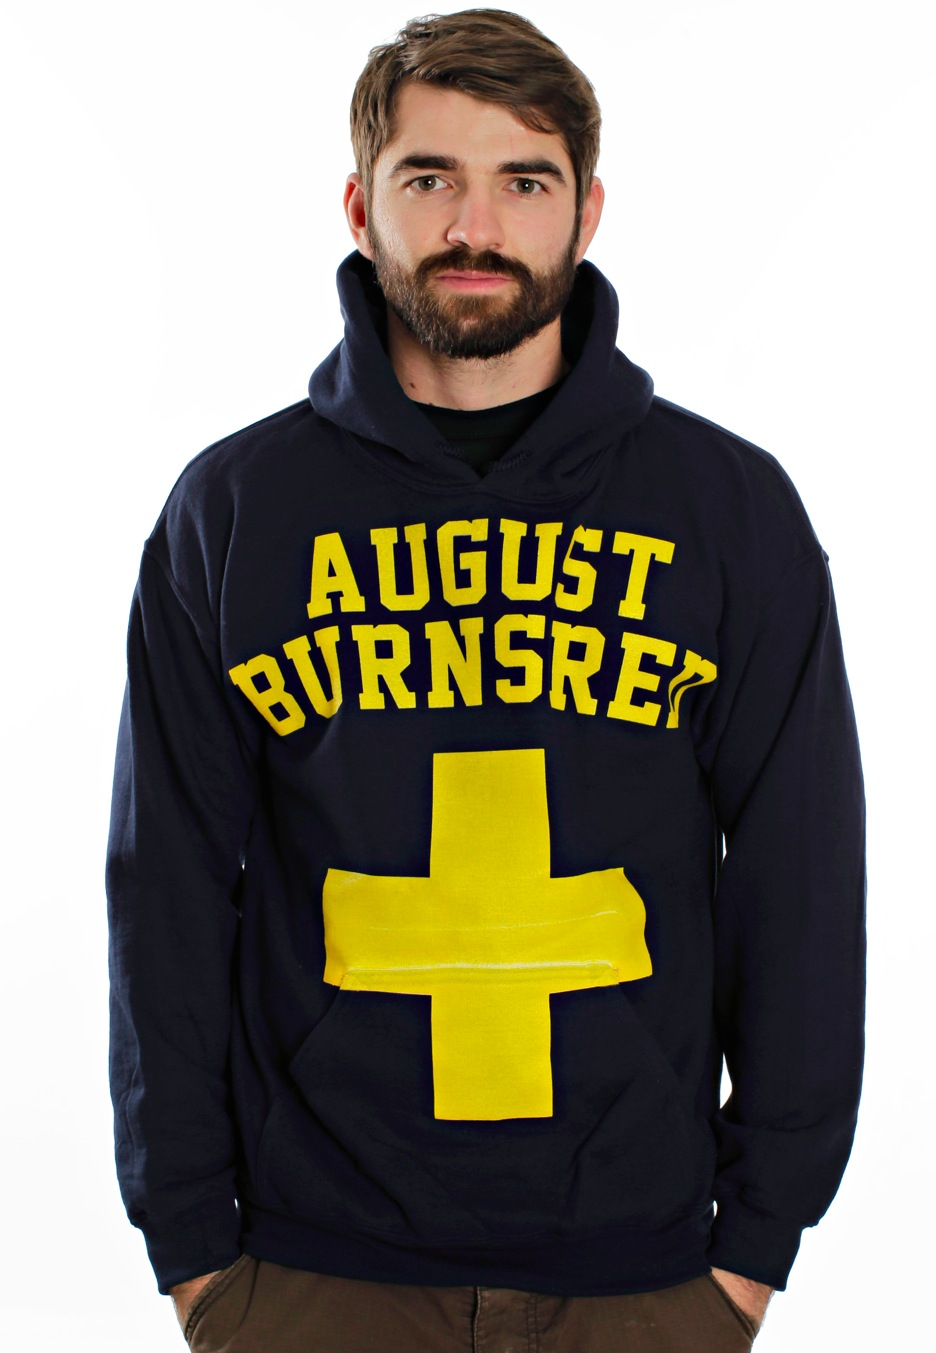 August burns red hoodie